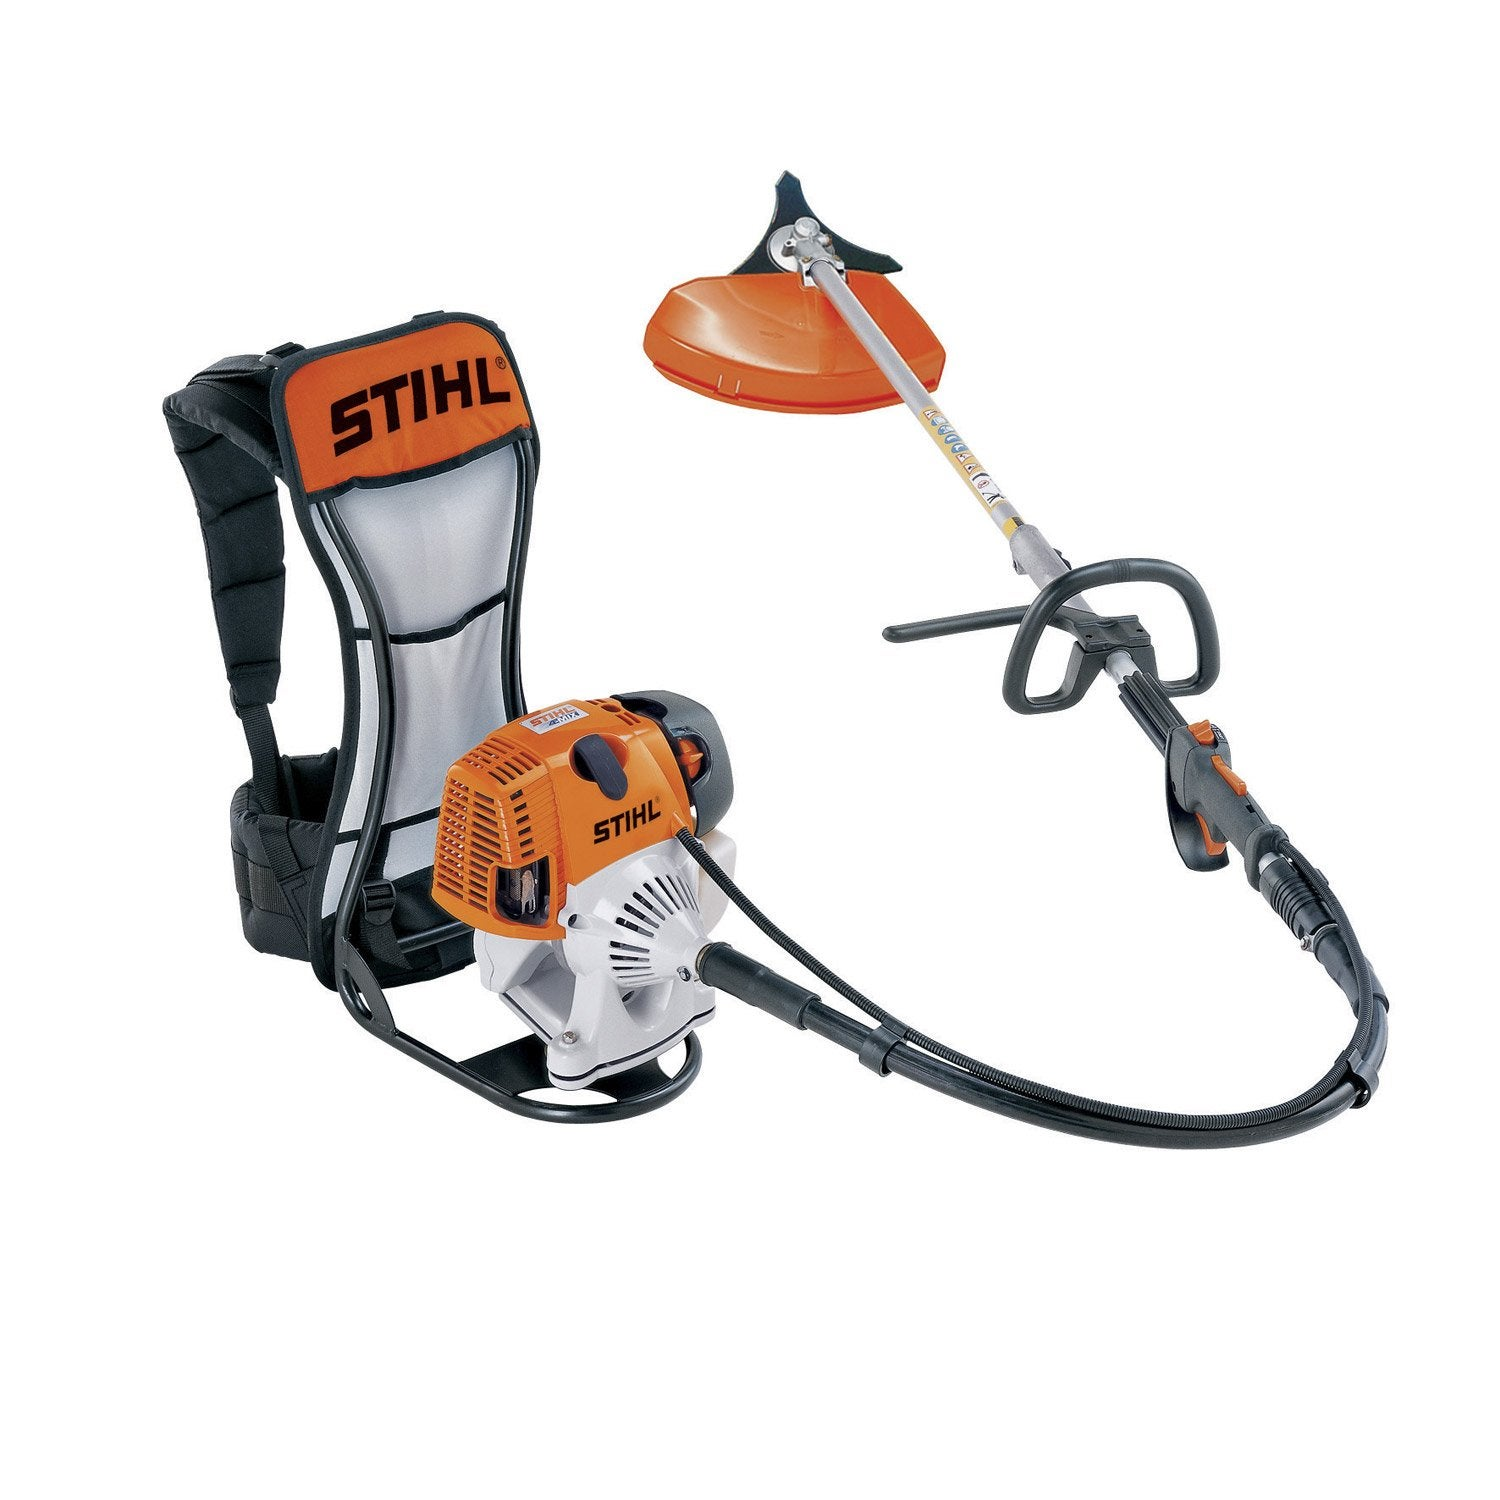 d broussailleuse essence stihl fr 130 t 36 3 cm 1400 w cm leroy merlin. Black Bedroom Furniture Sets. Home Design Ideas